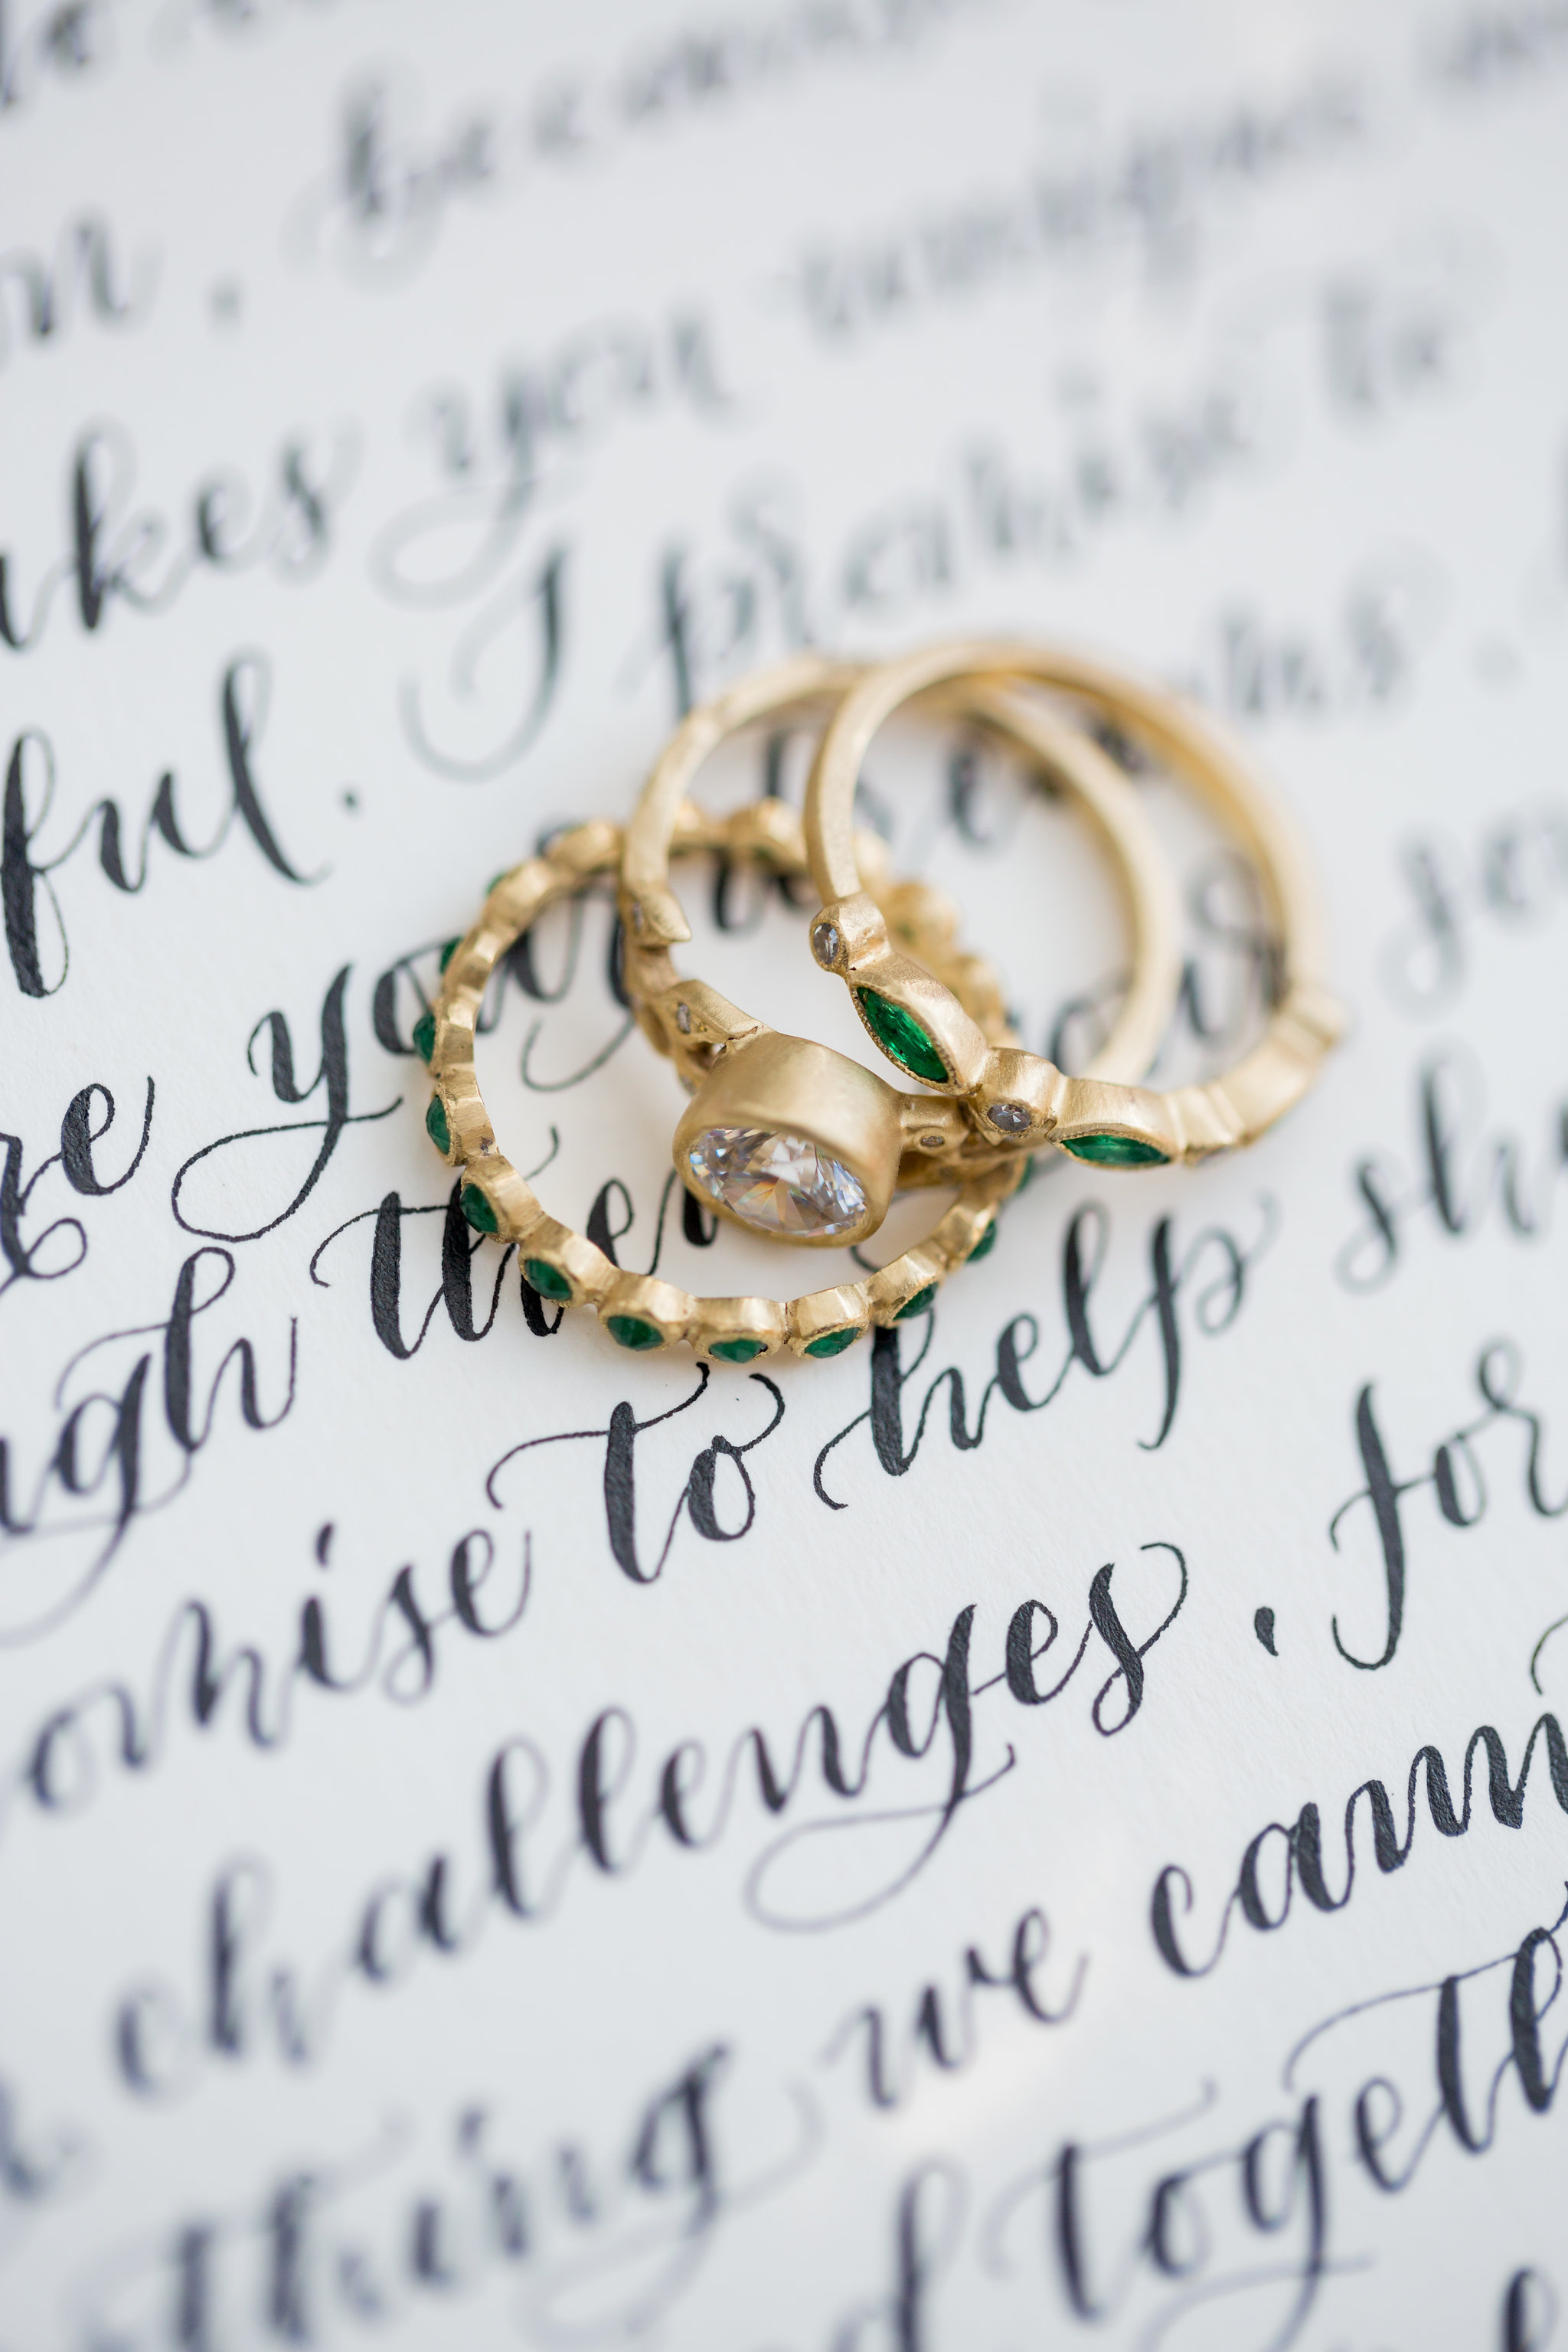 Elopement Announcement Esmerald and Gold Inspired by Paperloveme Calligraphy121.jpg